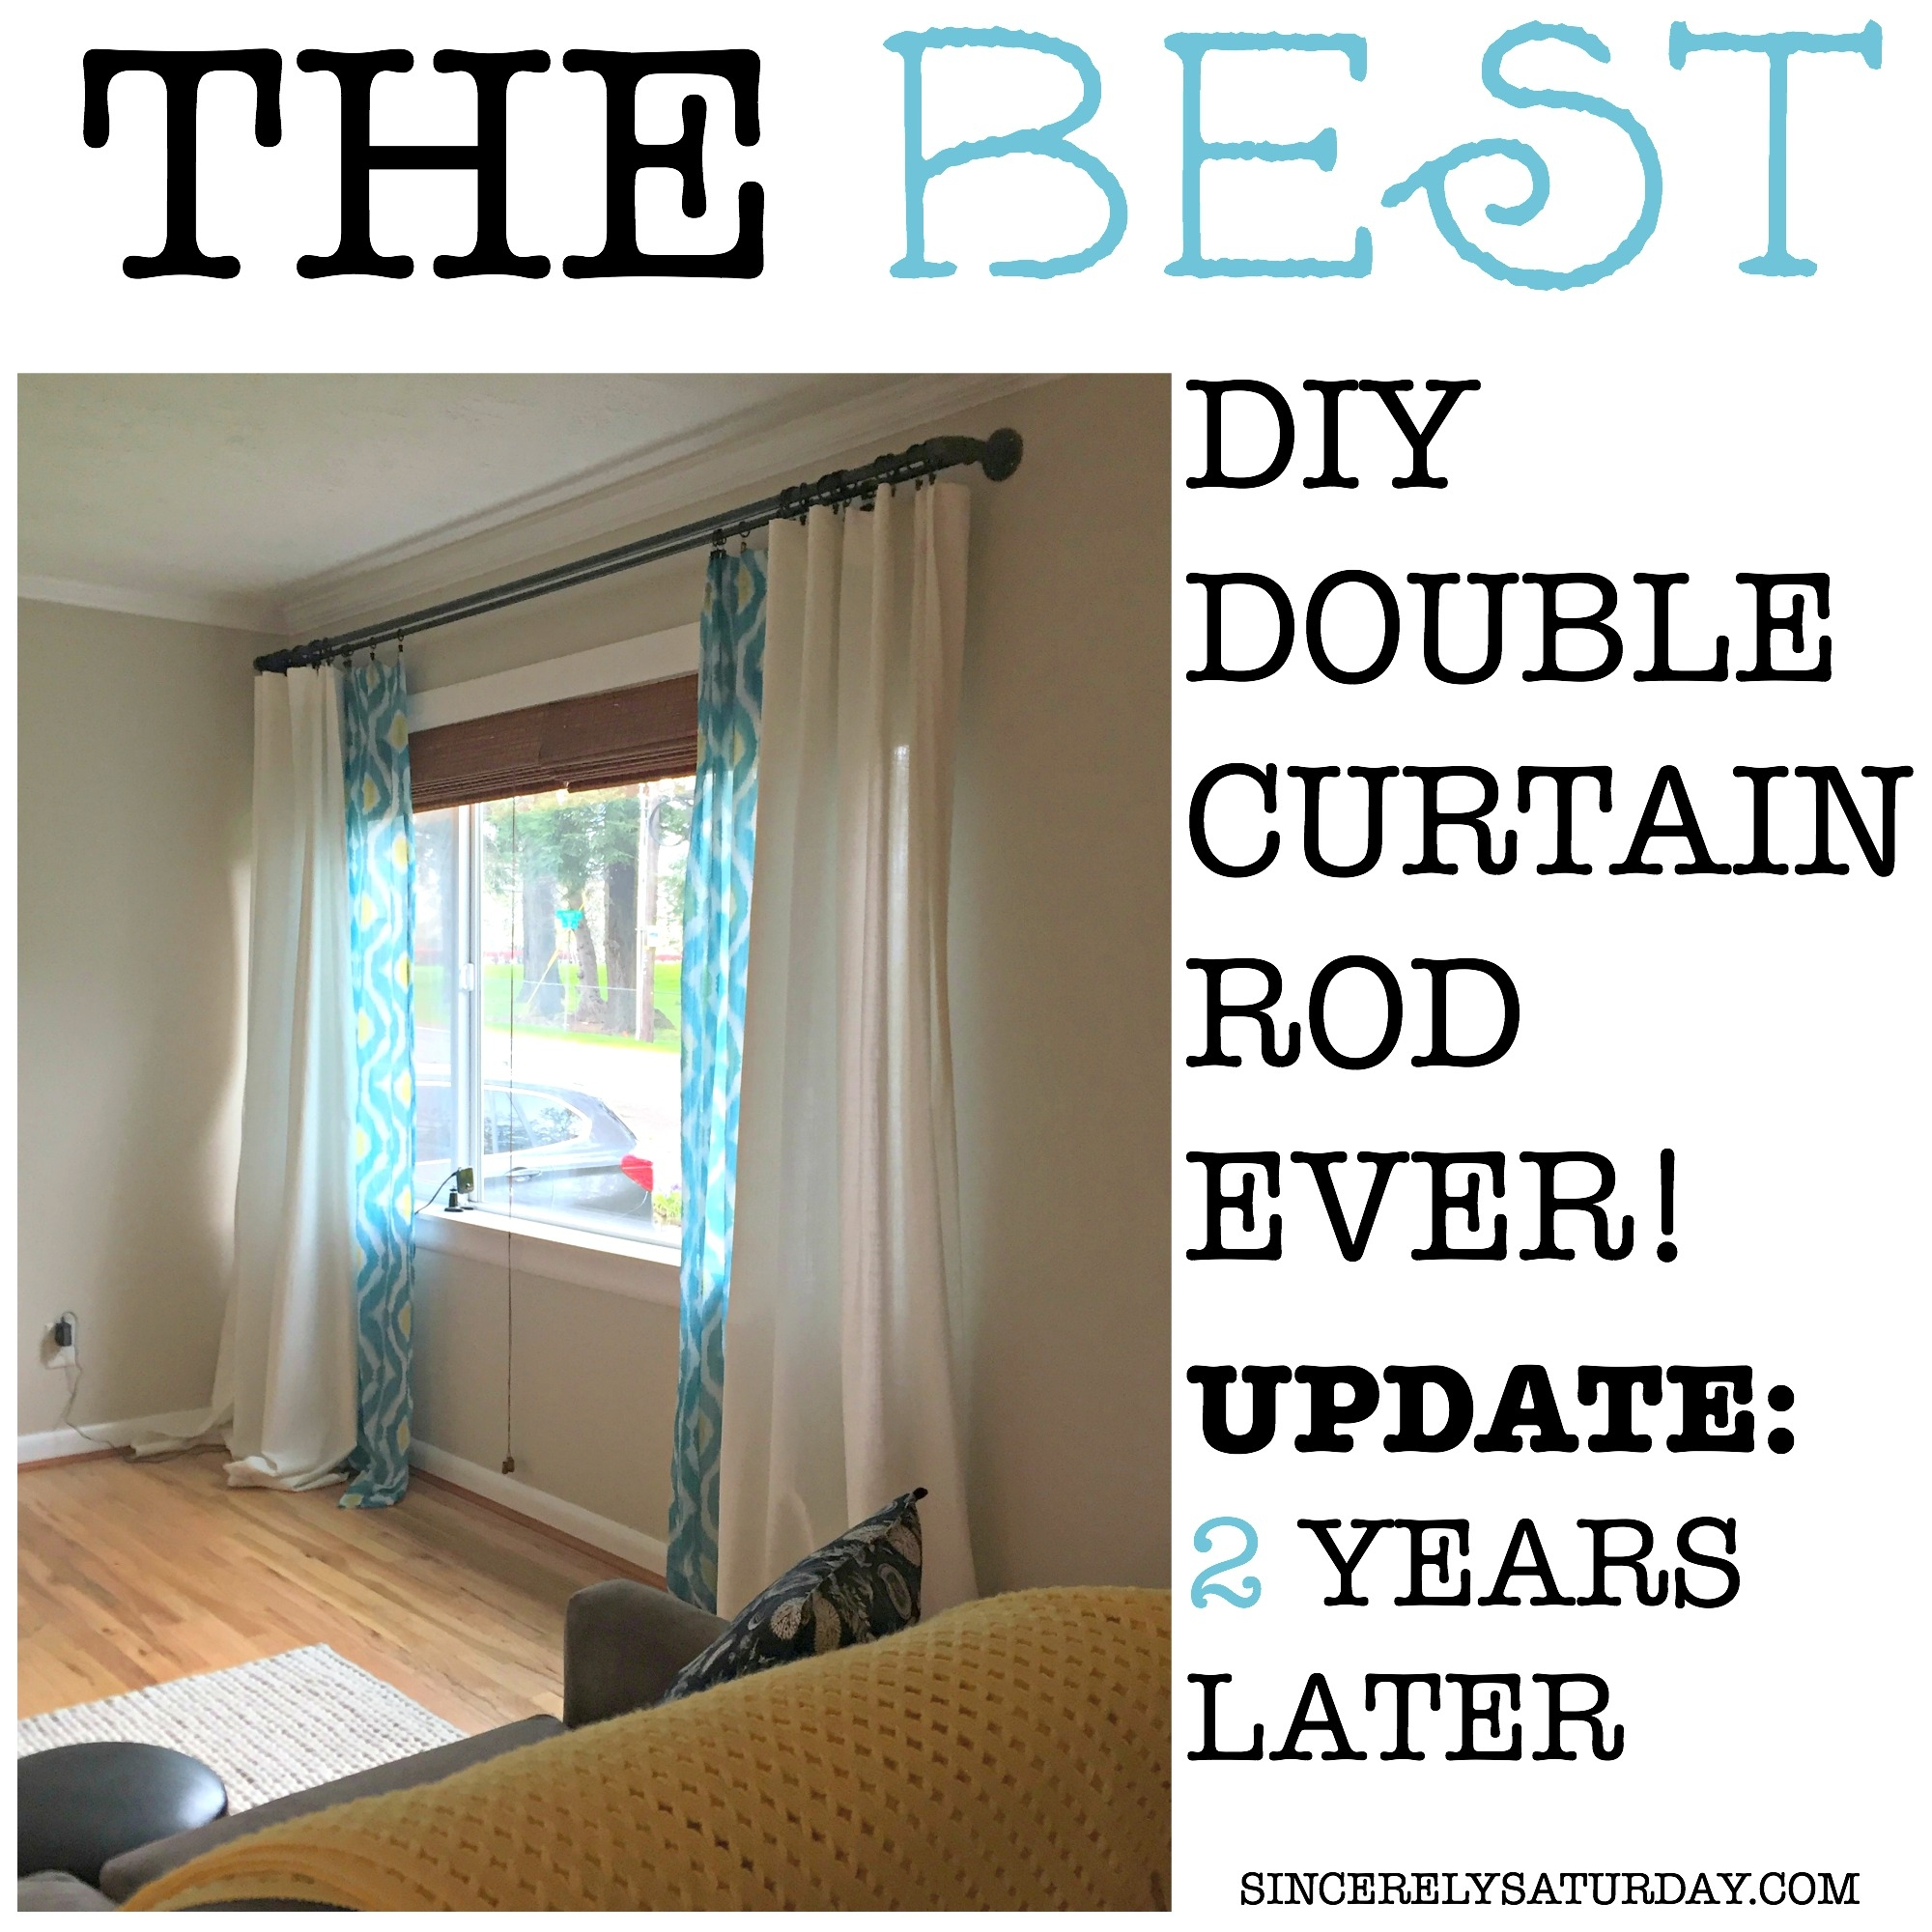 Diy industrial double conduit curtain rod sincerely saturday the best double curtain rod 2 years later solutioingenieria Images